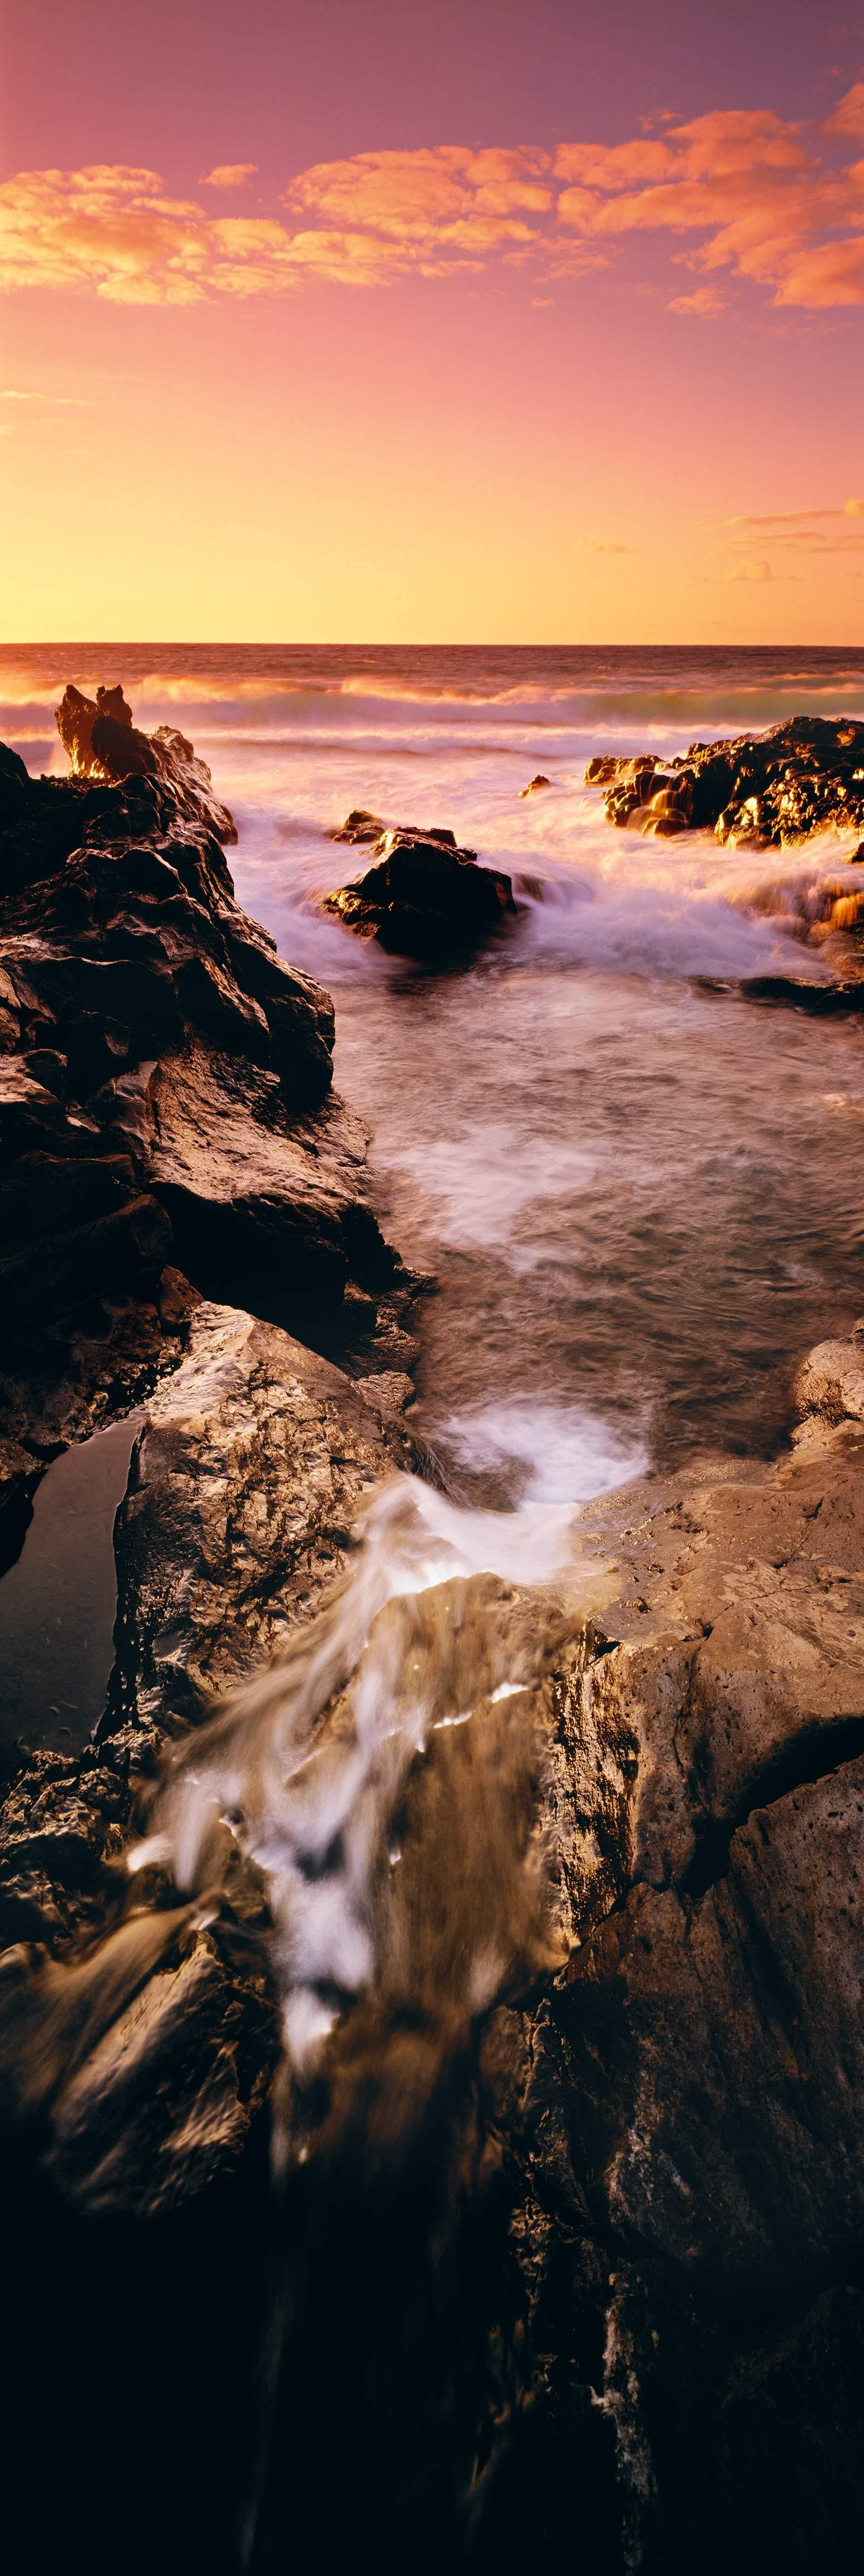 Ocean waves washing over the rocky tidal pools in Hana Hawaii at sunset